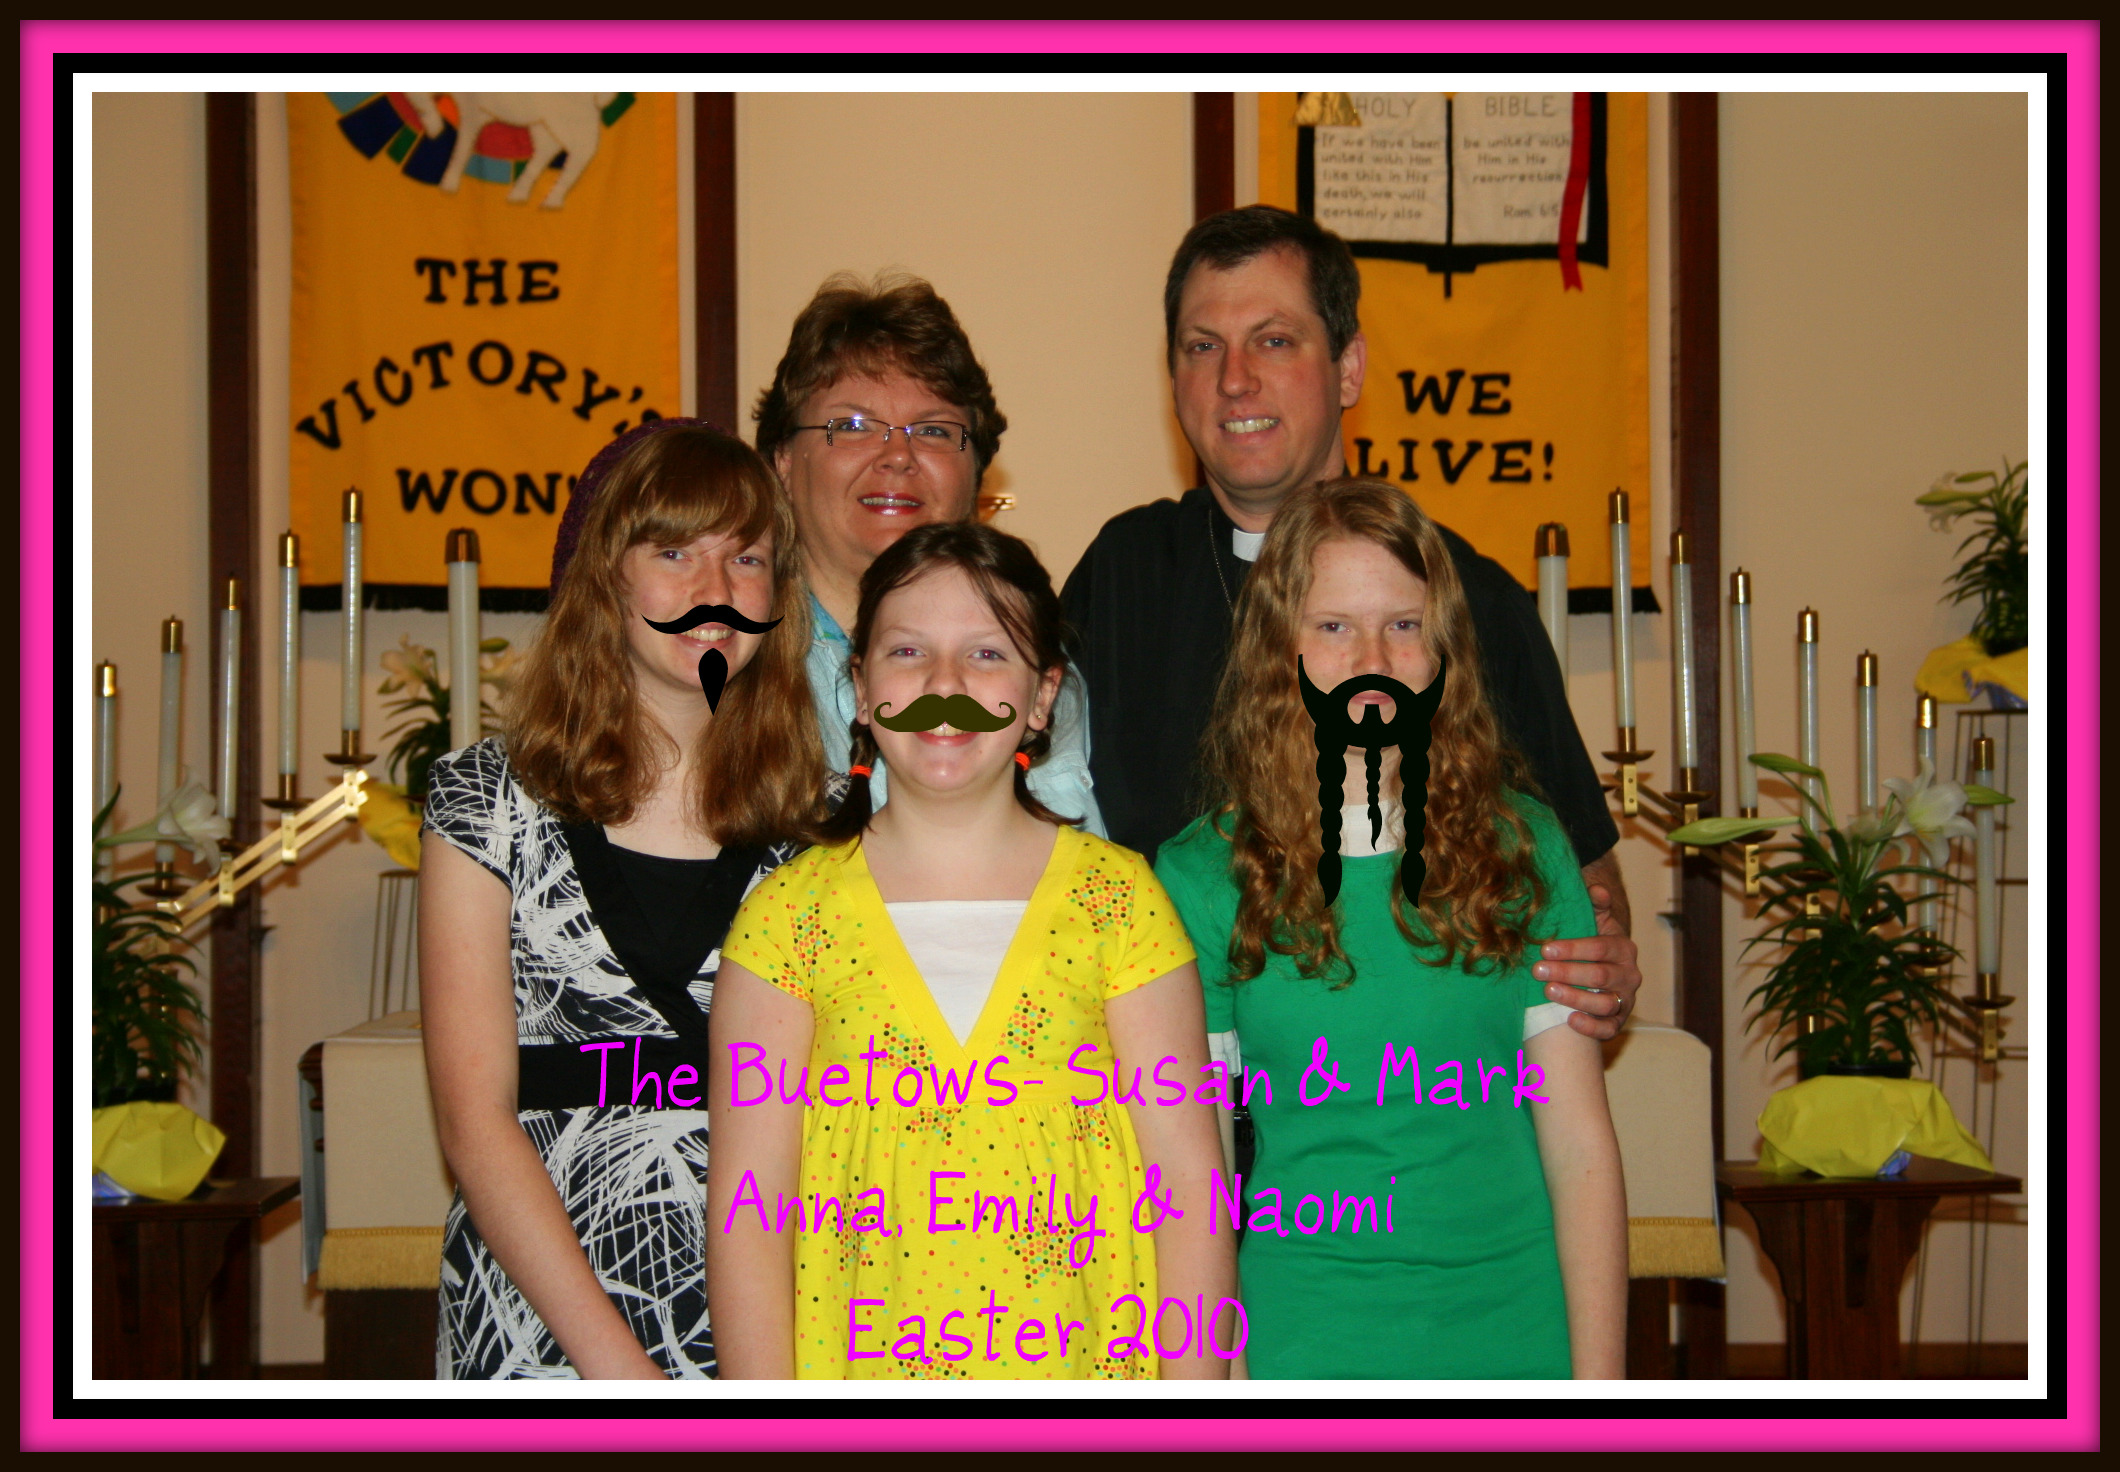 The Buetows at Easter...with moustaches!